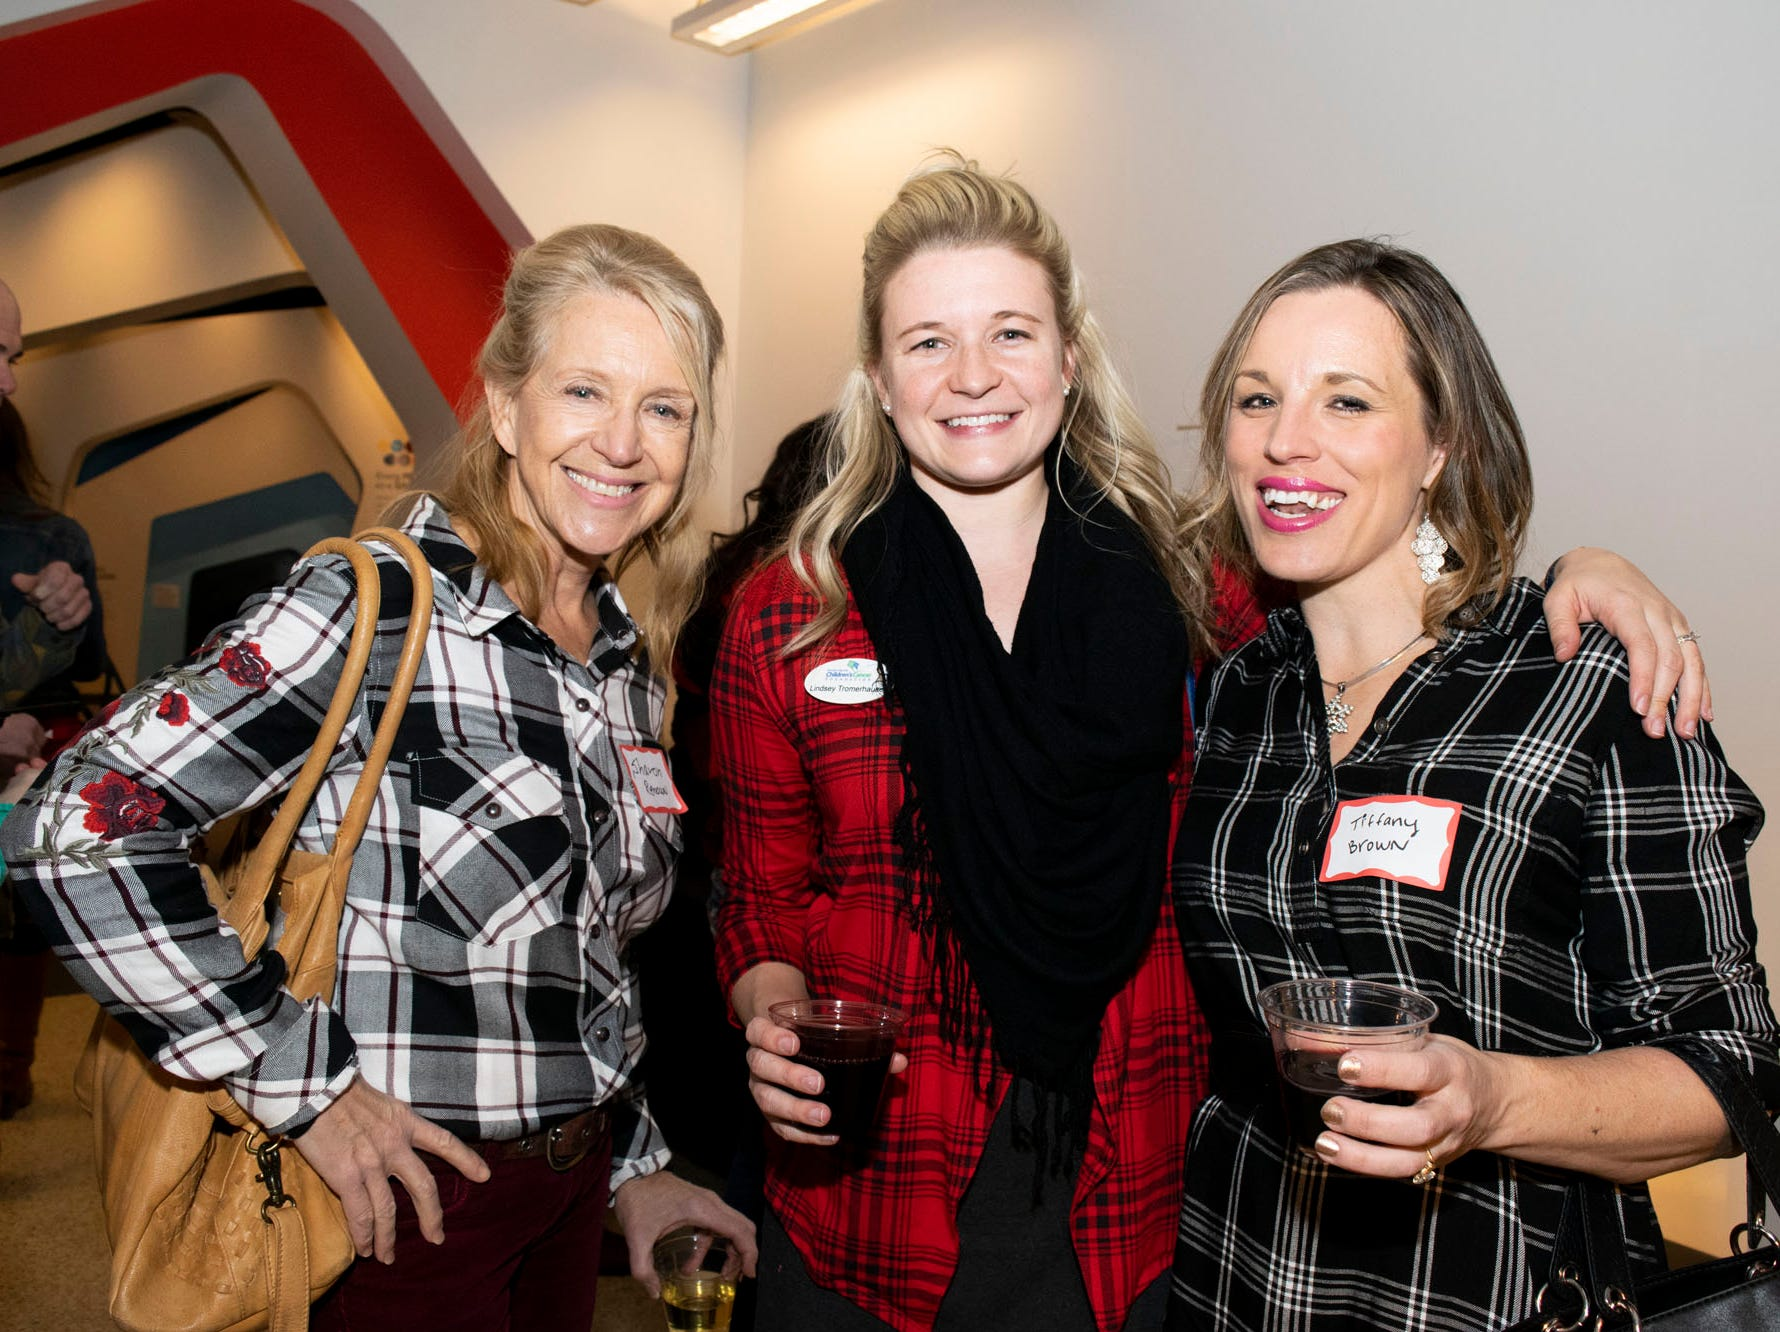 Sharon Spangler, Lindsey Tromerhauser, and Tiffany Brown attend Mingle Bells 2018 at the Discovery Museum on Thursday, Dec. 6, 2018. Reno, Nev.